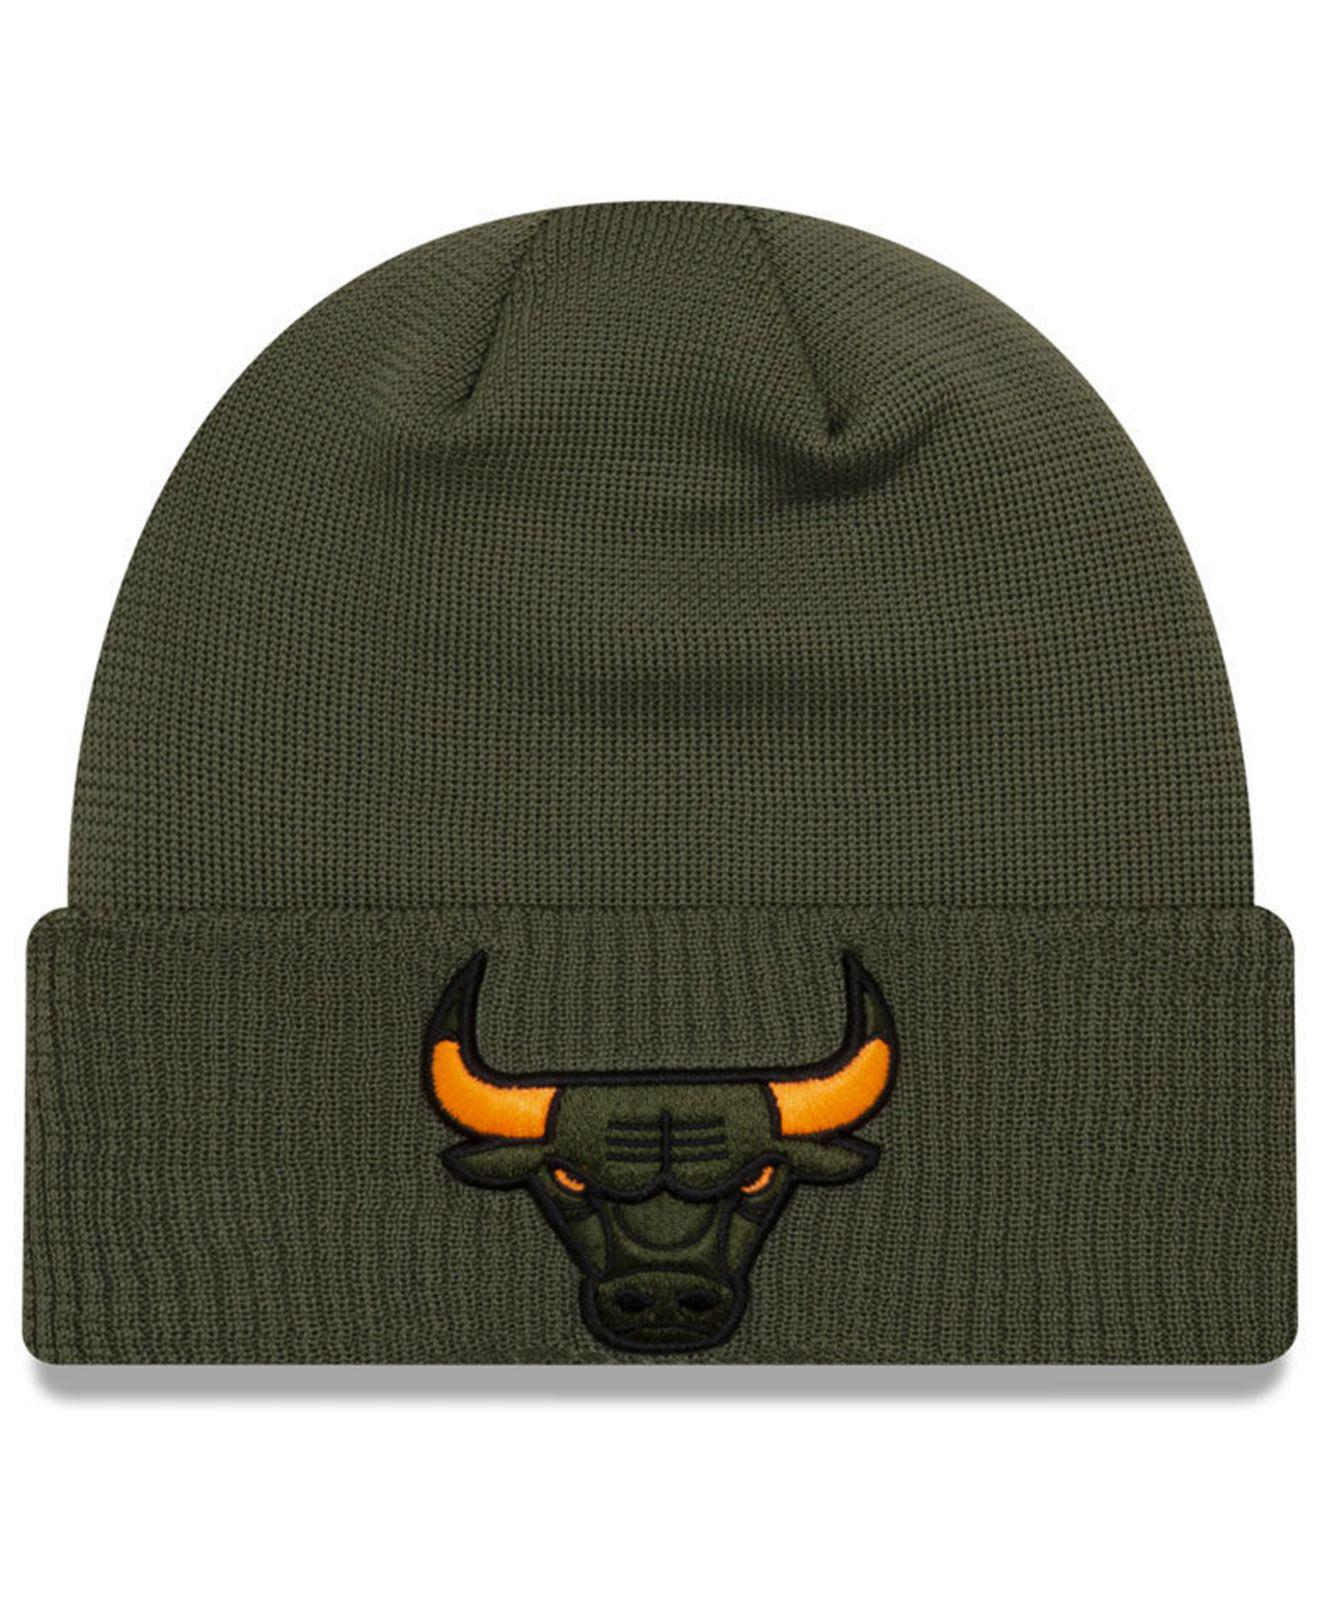 24a396534a2 Lyst - KTZ Chicago Bulls Tip Pop Cuffed Knit Hat in Green for Men